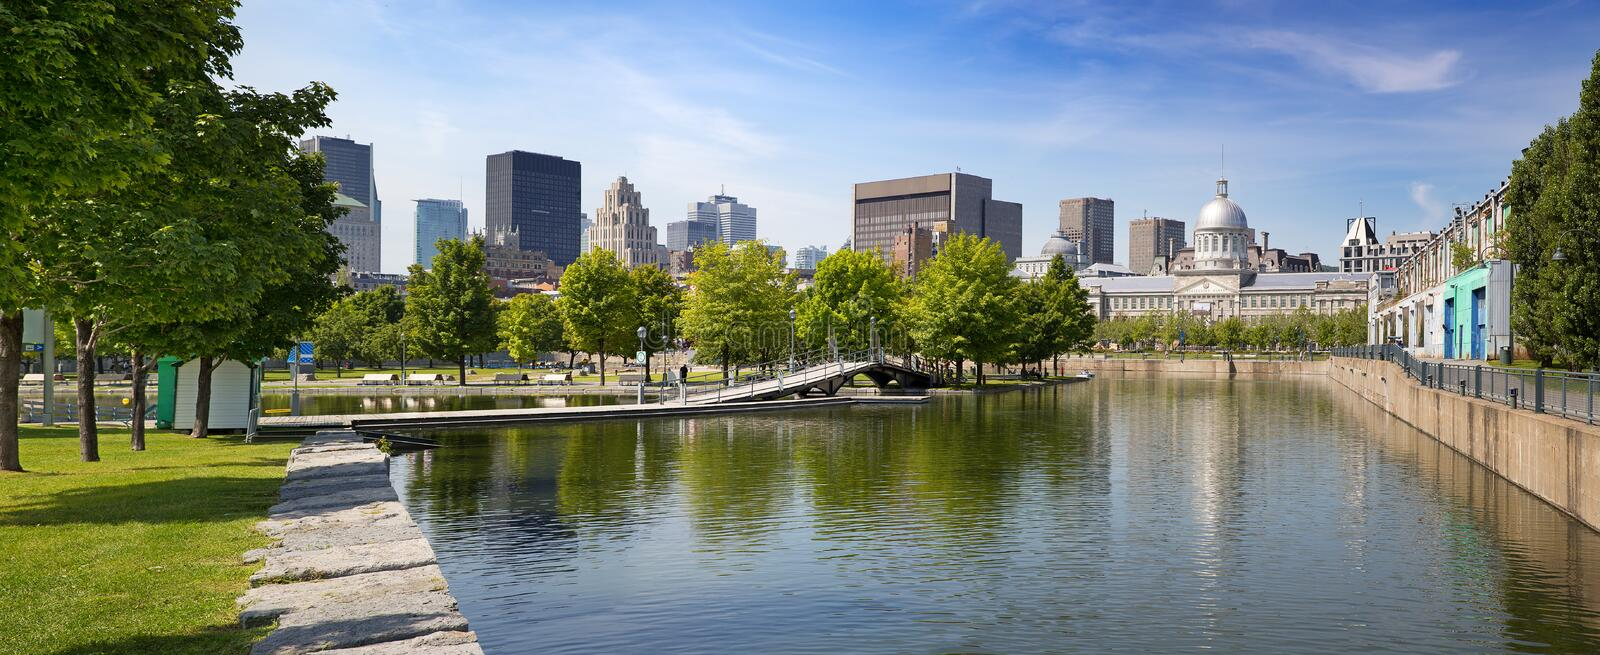 Downtown Montreal in summer royalty free stock photography